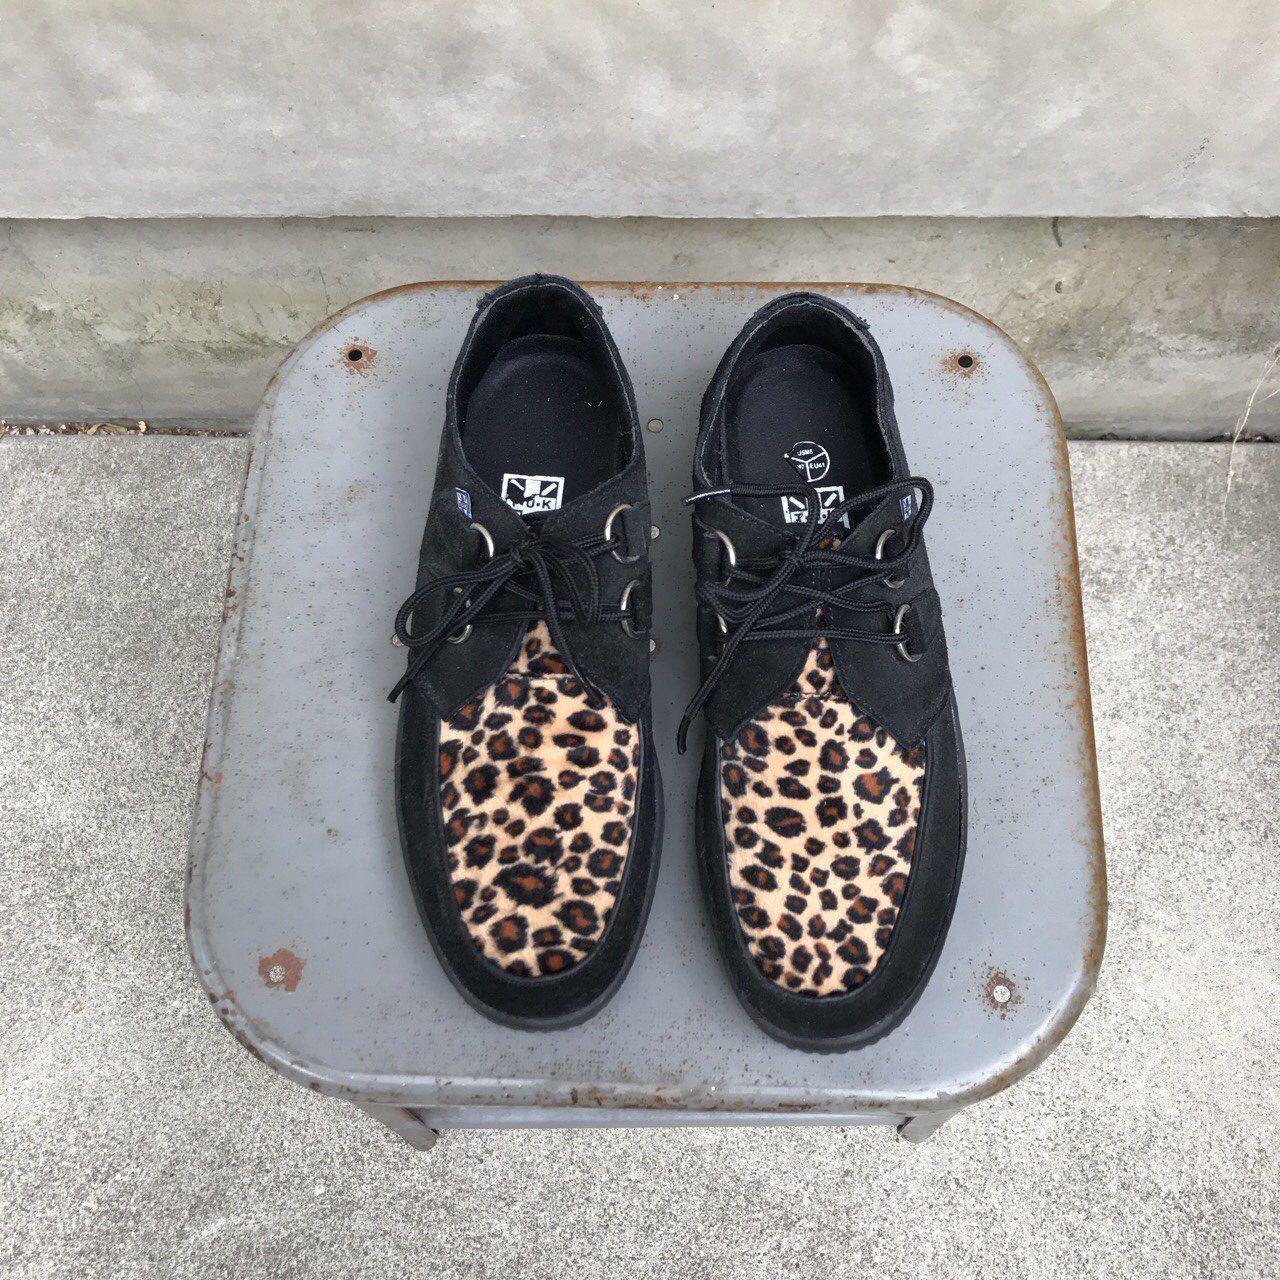 887aebab1 RESERVED FOR  deadlybunny • T.U.K women s black suede and 10 - Depop